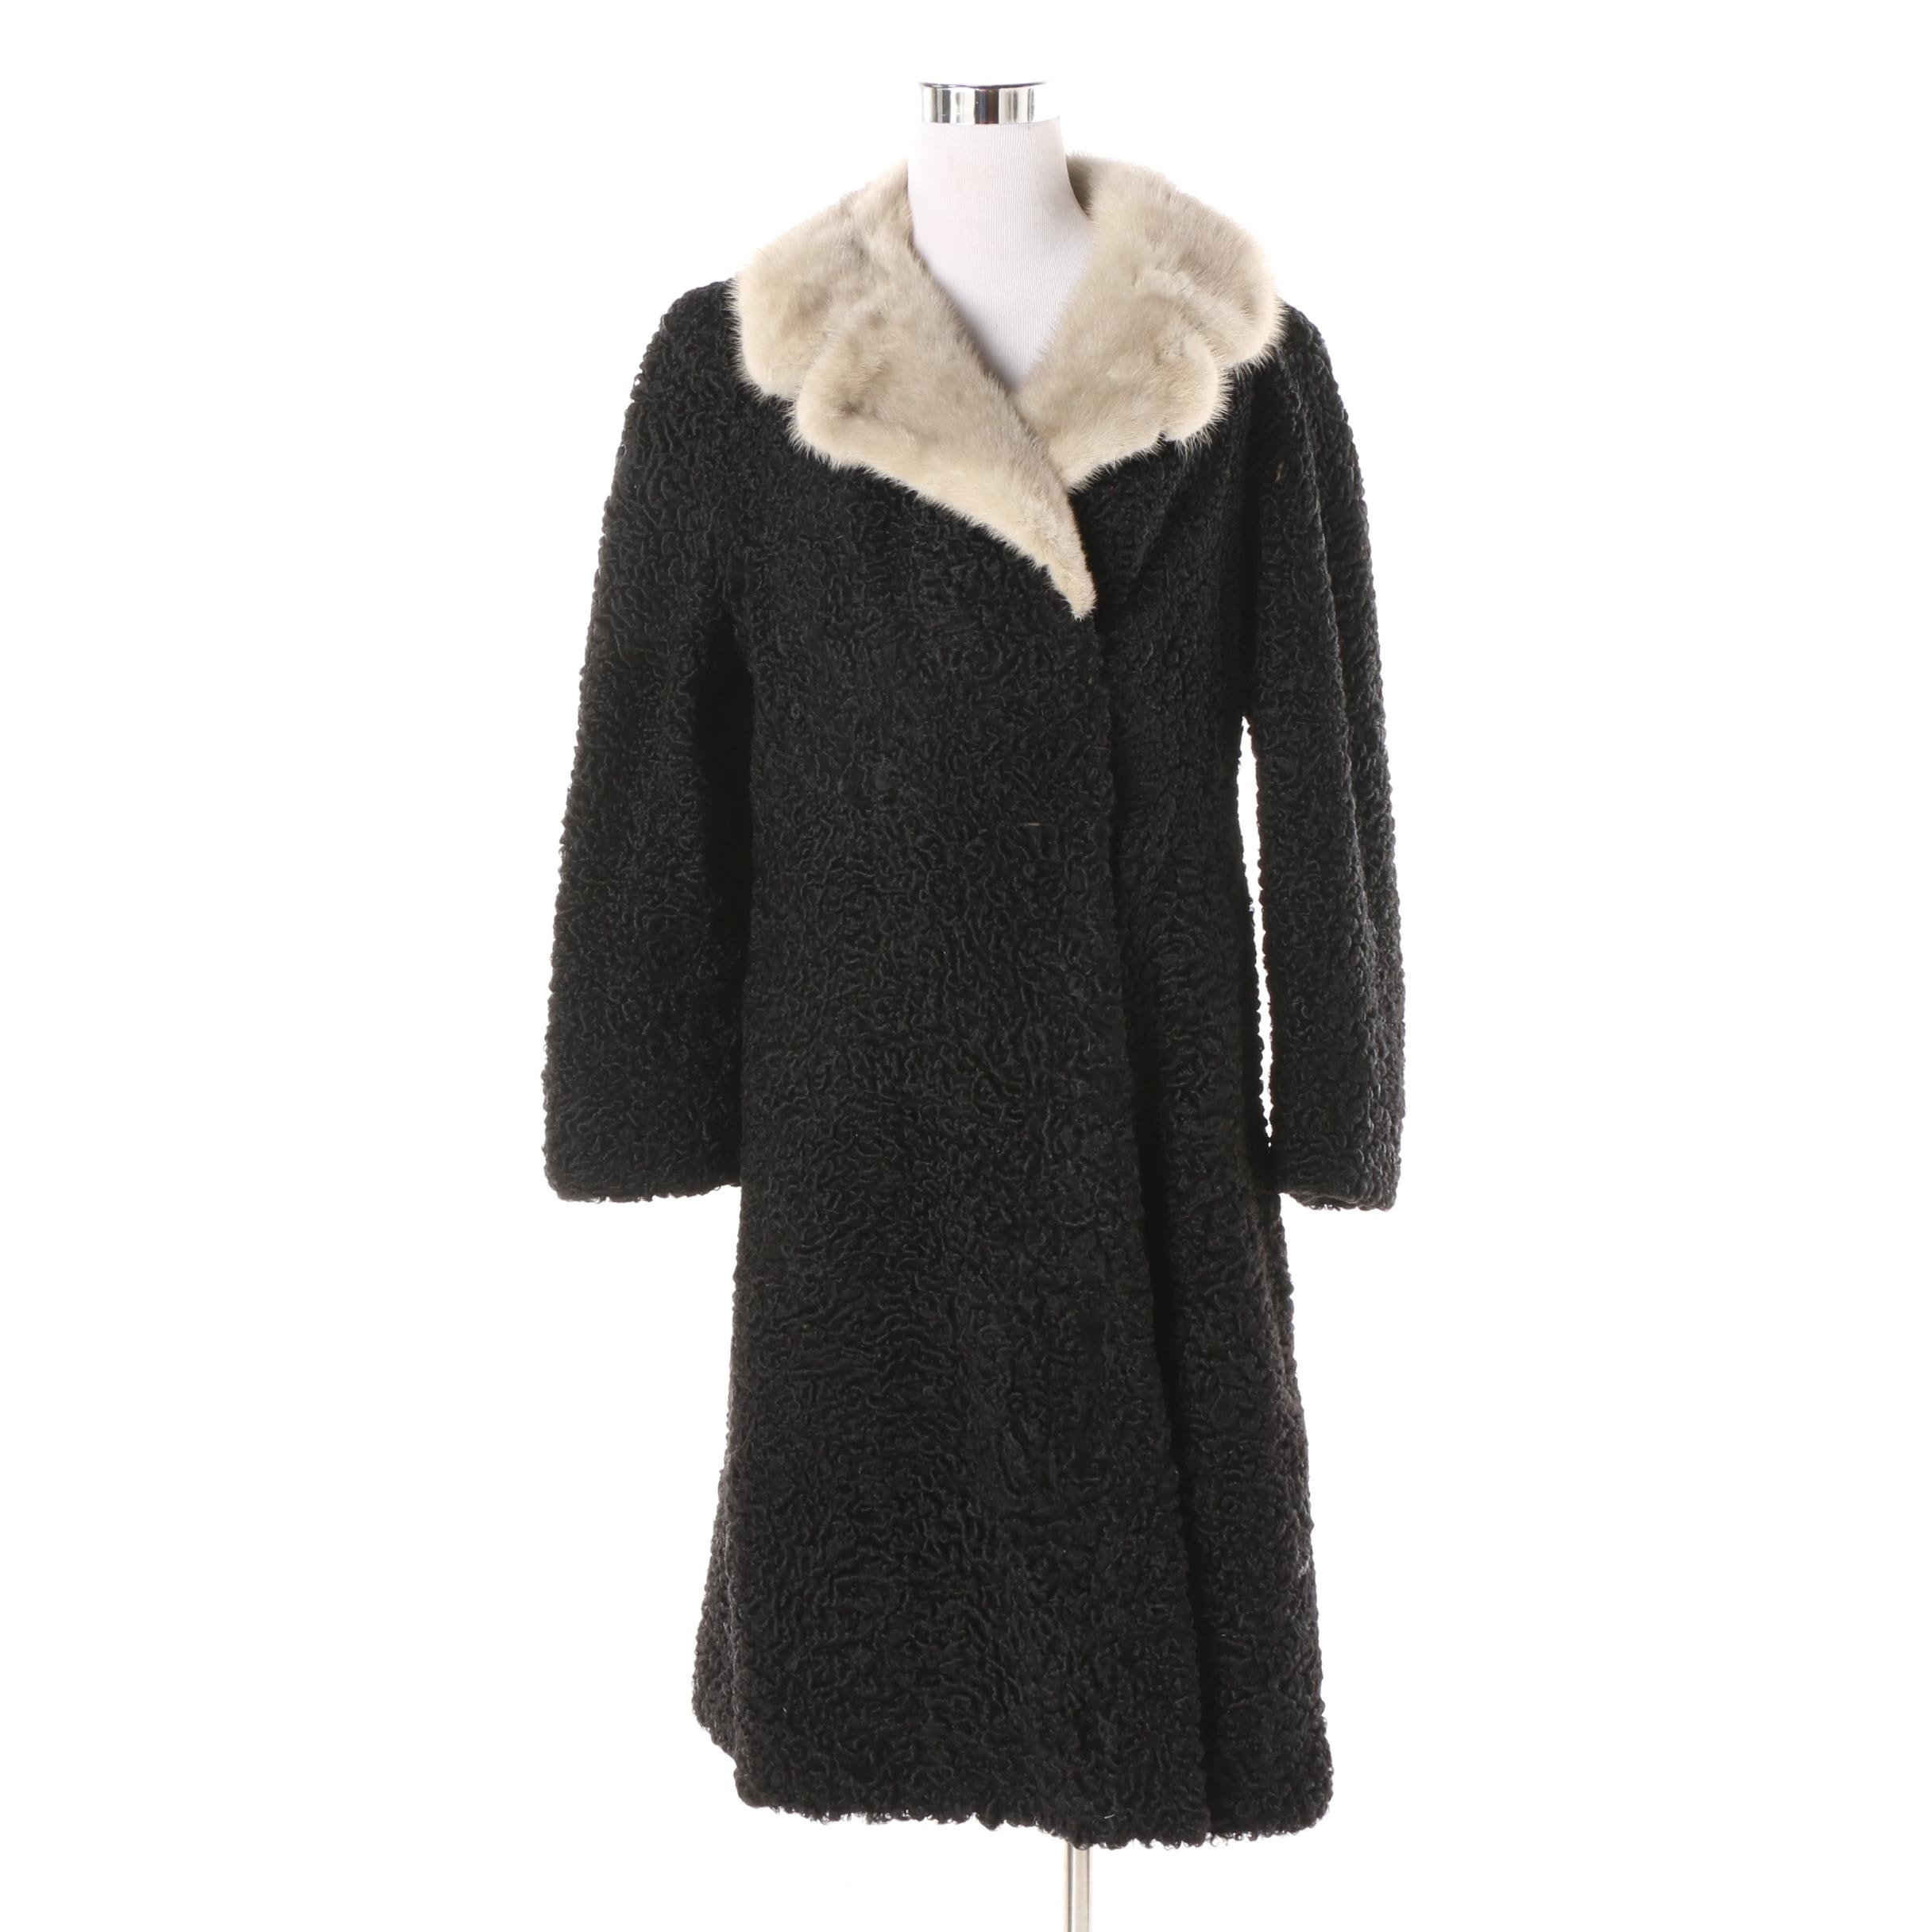 Women's Vintage Weiner's Furs Persian Lamb Princess Coat with Mink Fur Collar